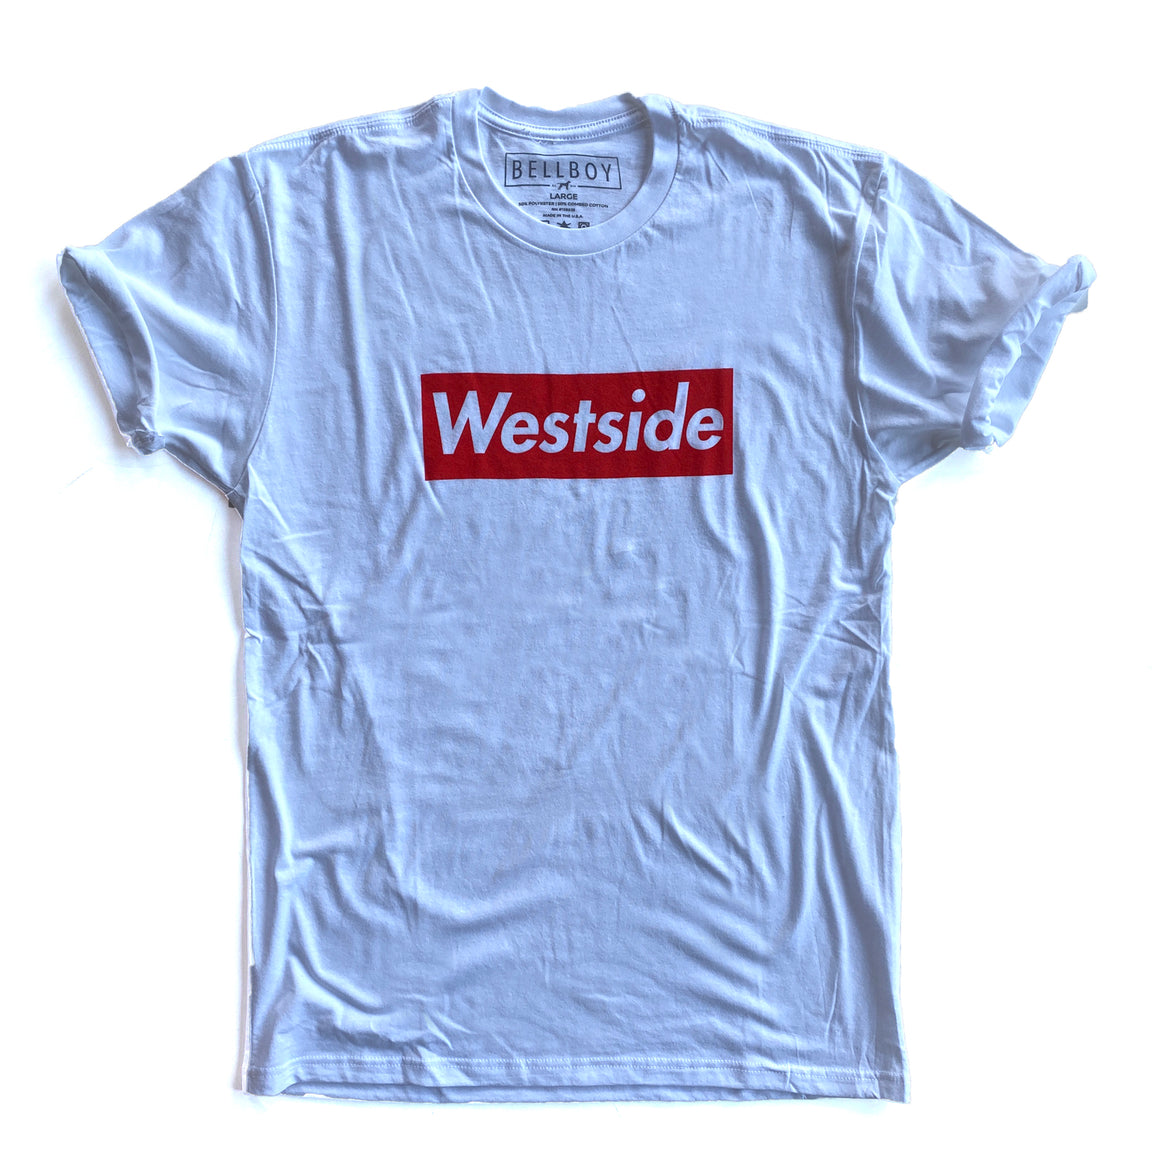 BELLBOY | WESTSIDE | WHITE